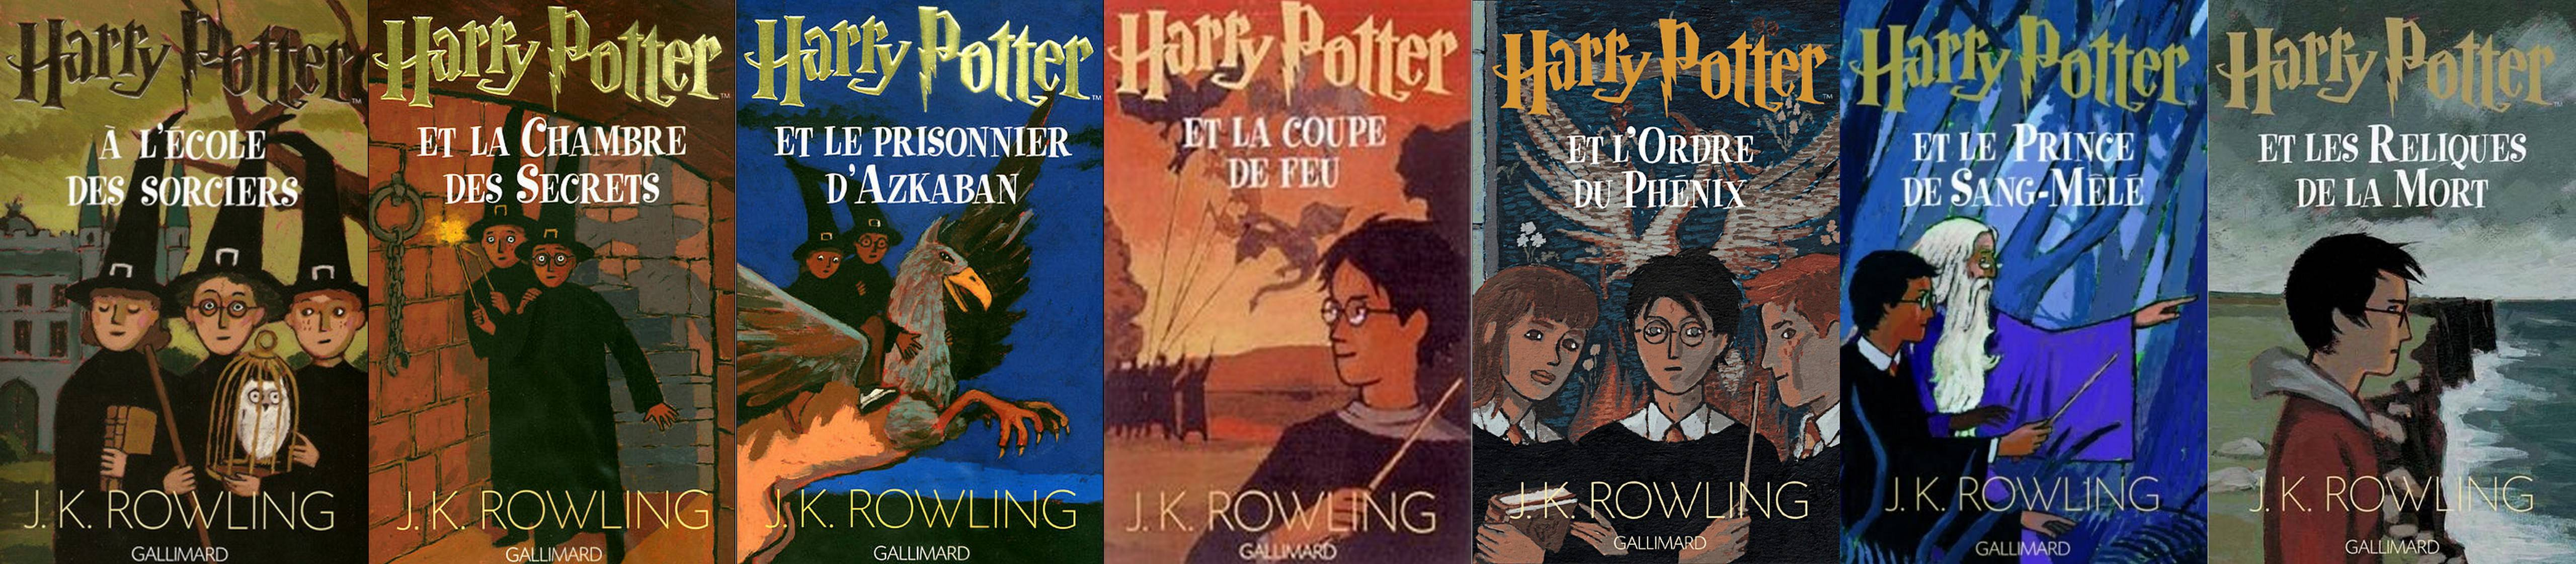 Harry Potter de J. K. Rowling